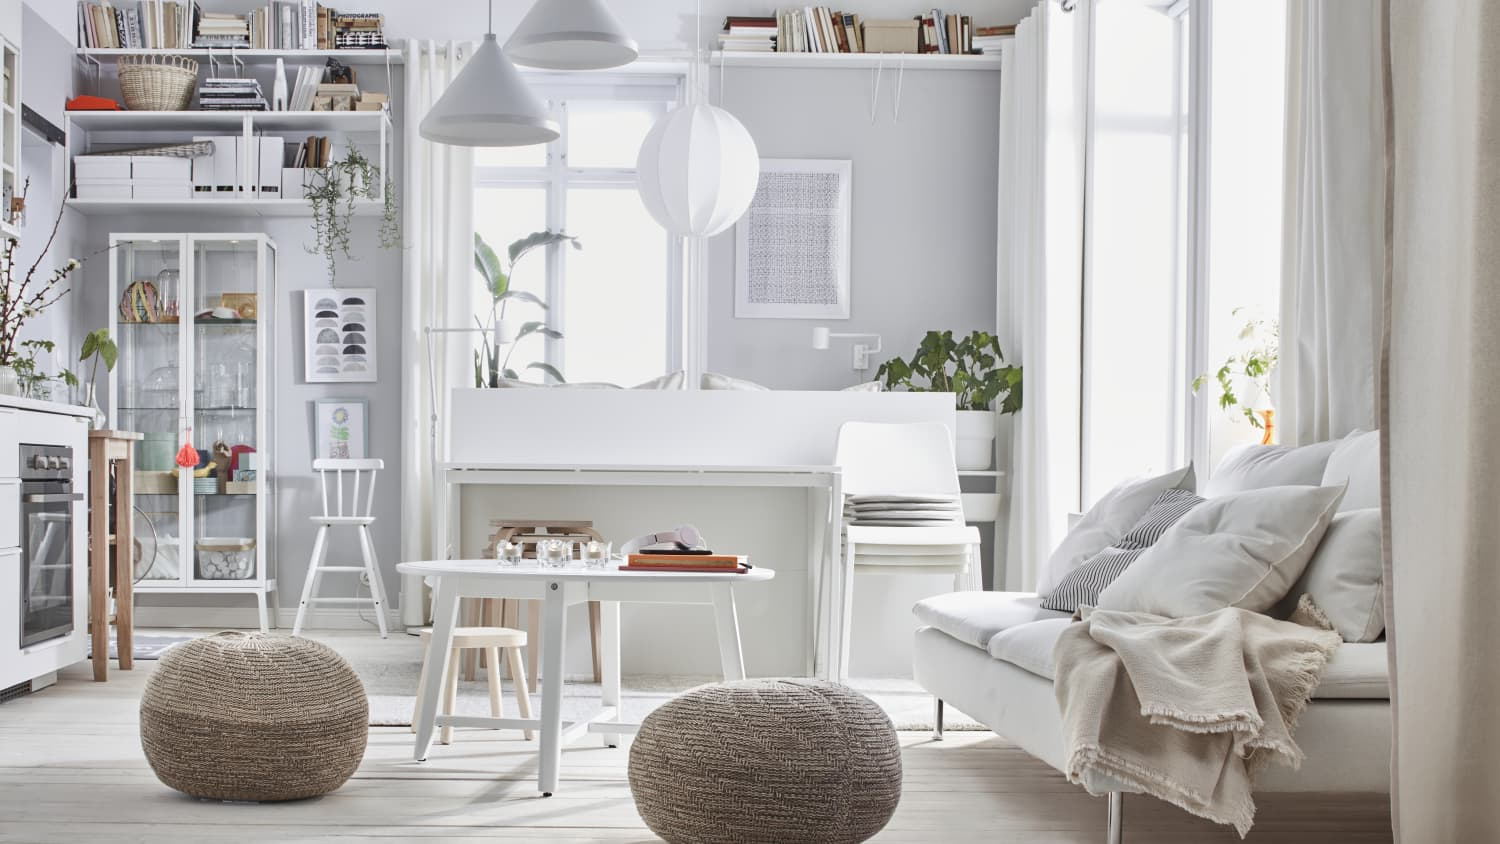 Ikea Catalog 2021 Small Space Organizing Tips Apartment Therapy